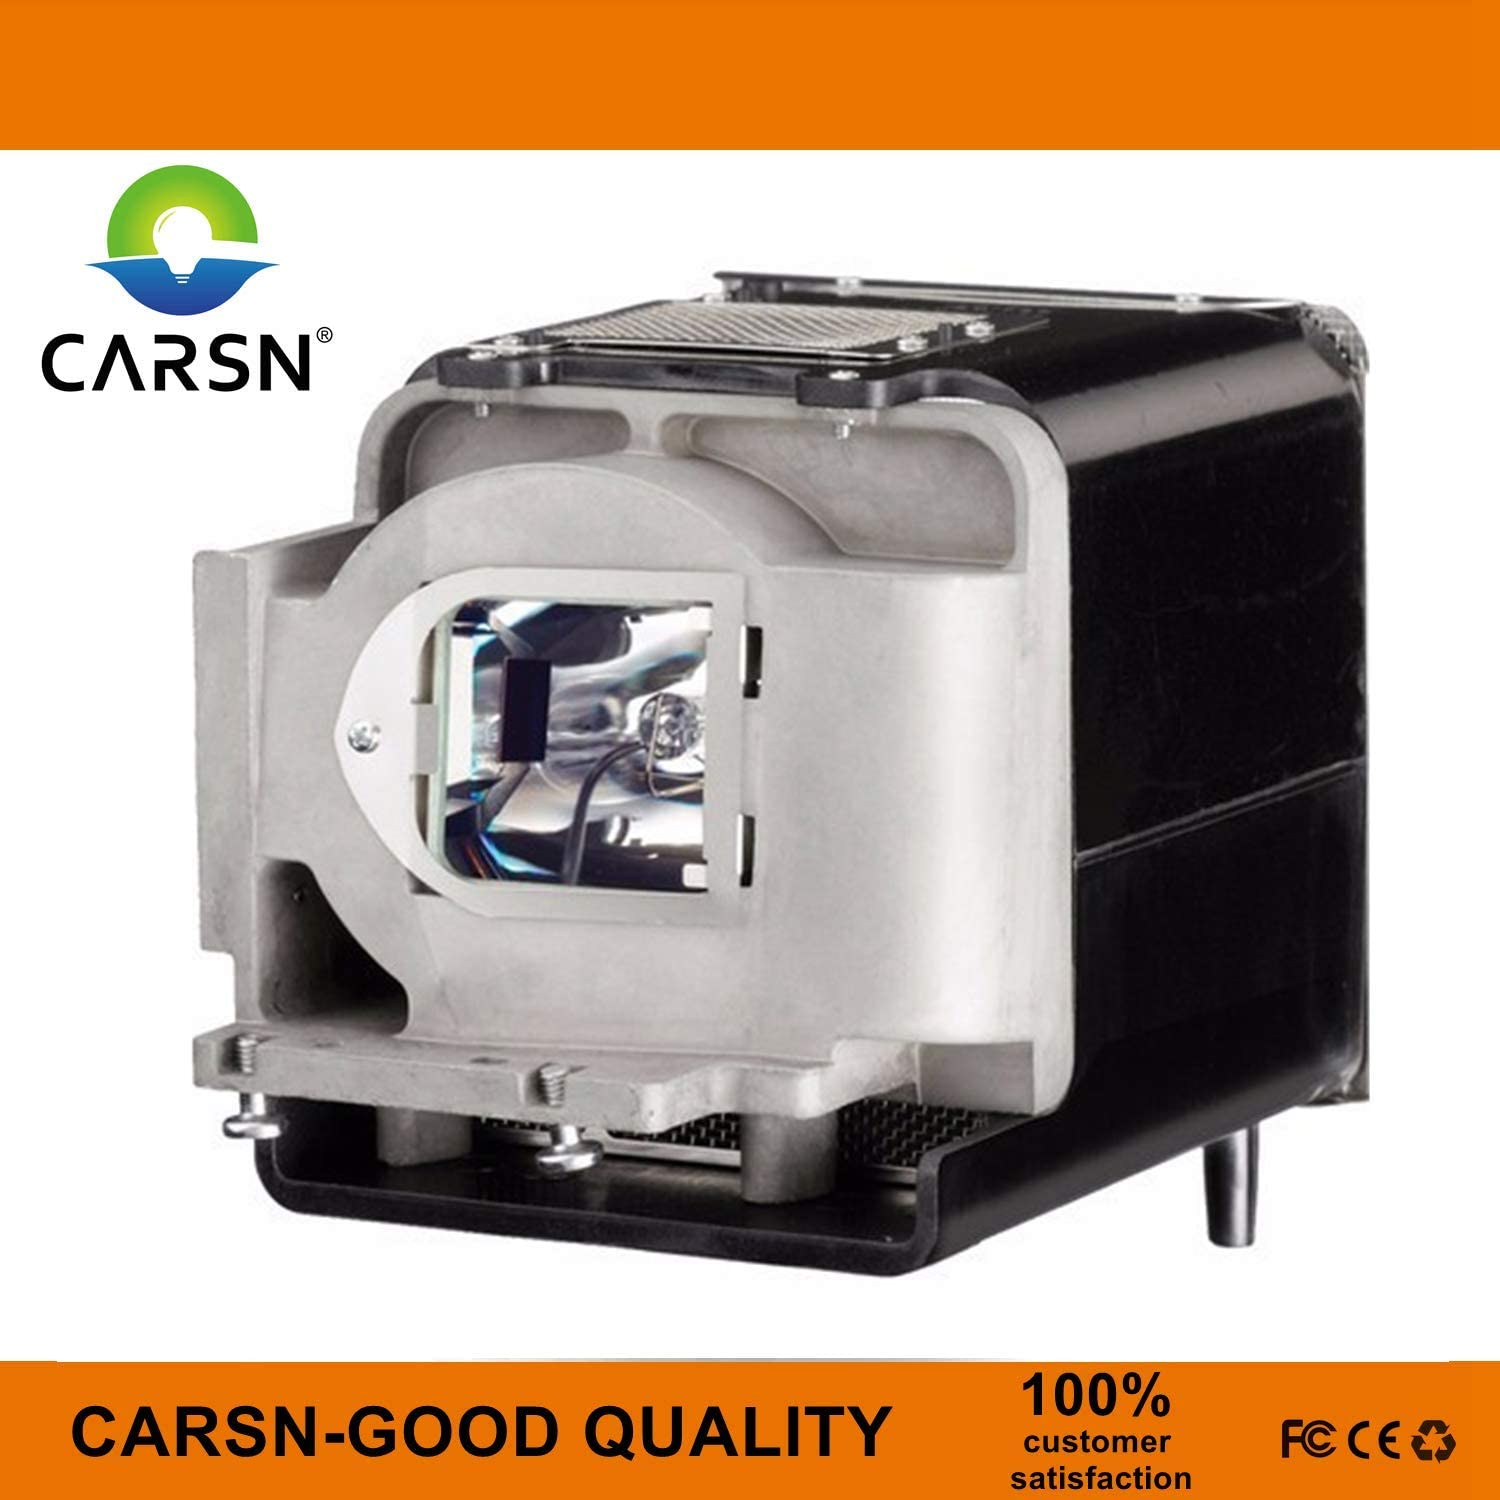 VLT-XD560LP Replacement Projector Lamp for Mitsubishi XD560U XD360-EST WD380-EST WD570 WD380U WD385U-EST WD390U WD570U XD360U XD550U, Lamp with Housing by CARSN